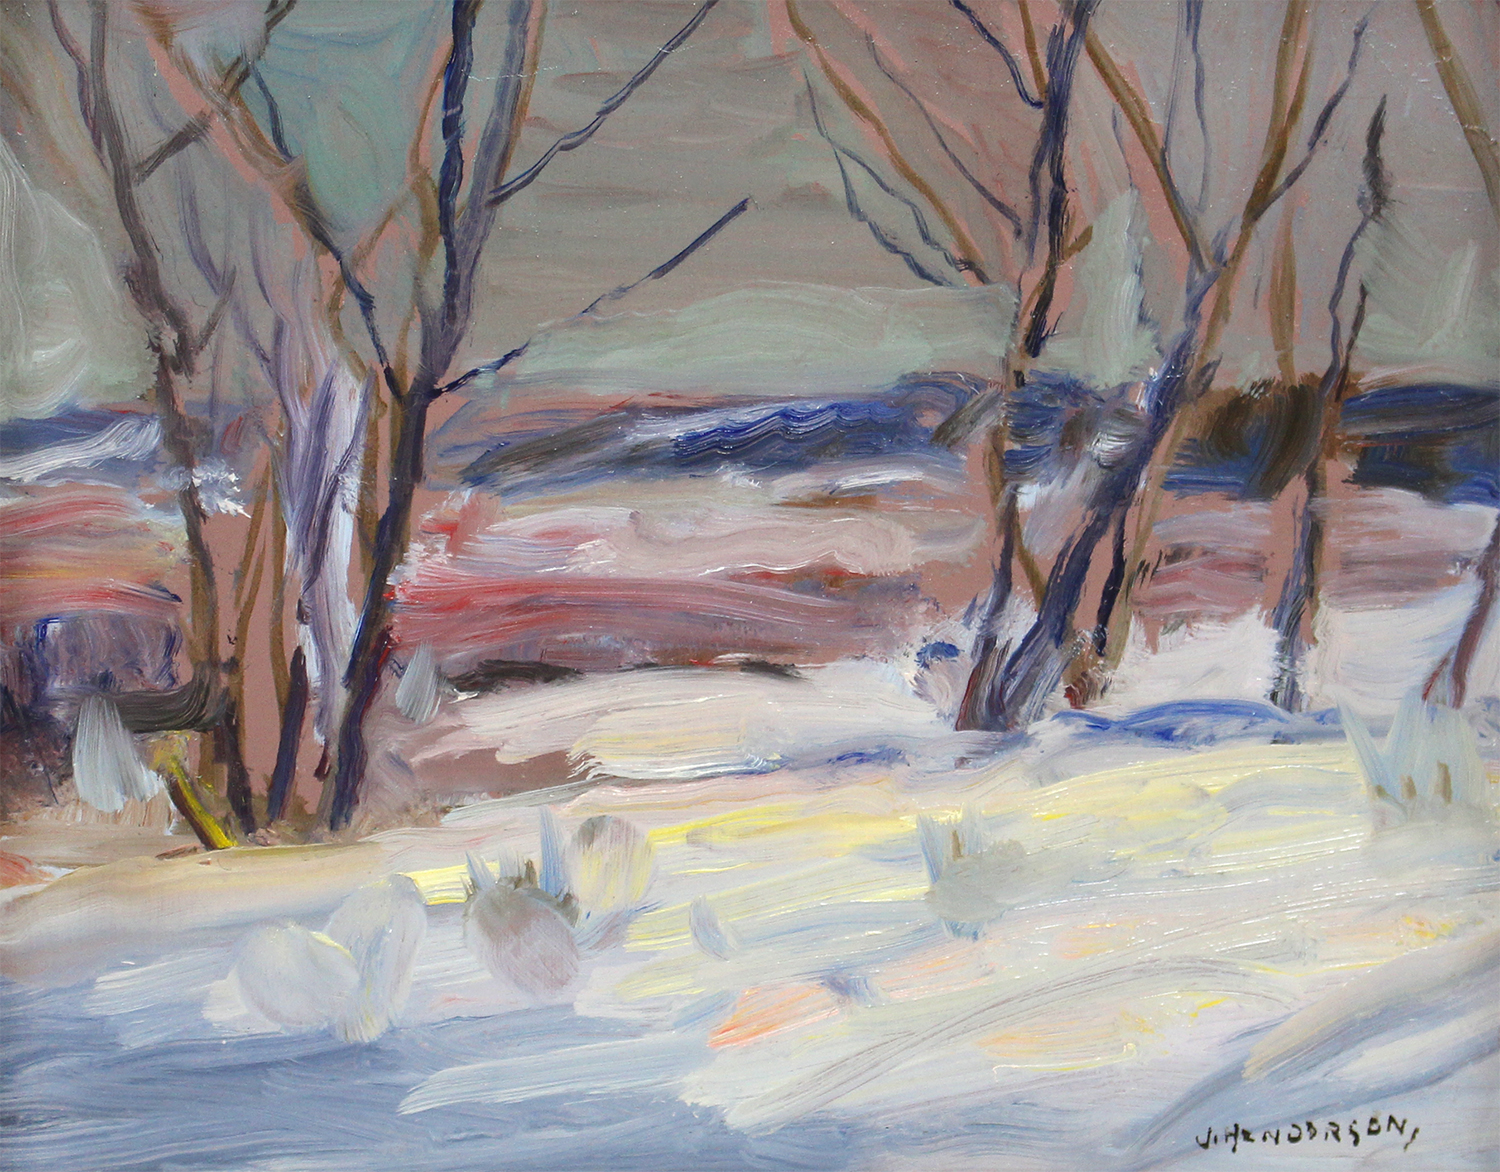 Historical Canadian painting by James Henderson (Canadian 1871-1951) 'Sketch of Our Backyard'